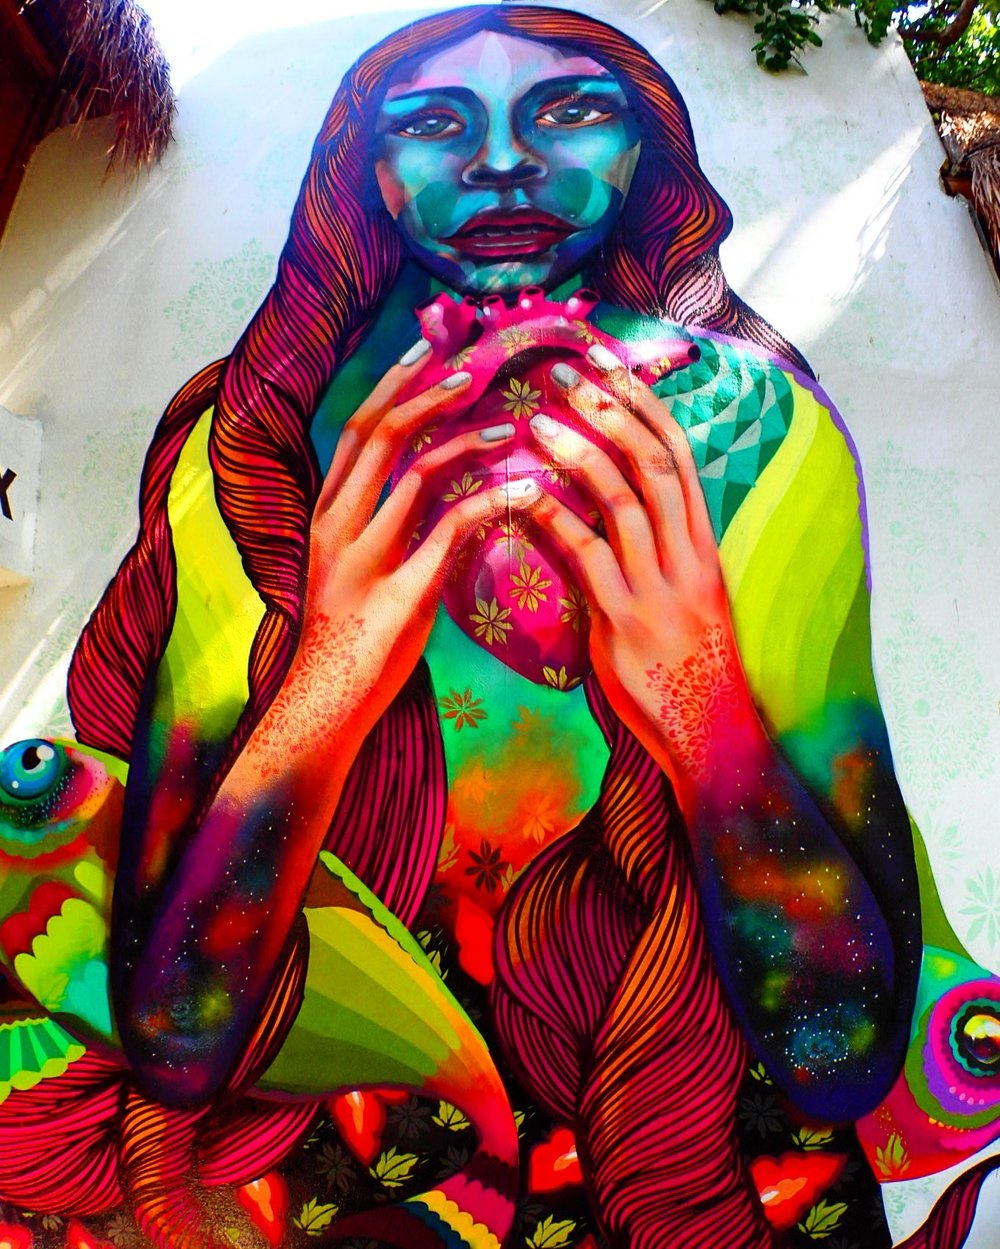 Beautiful mural at Hostal MX. Mexico is full of amazing street art!